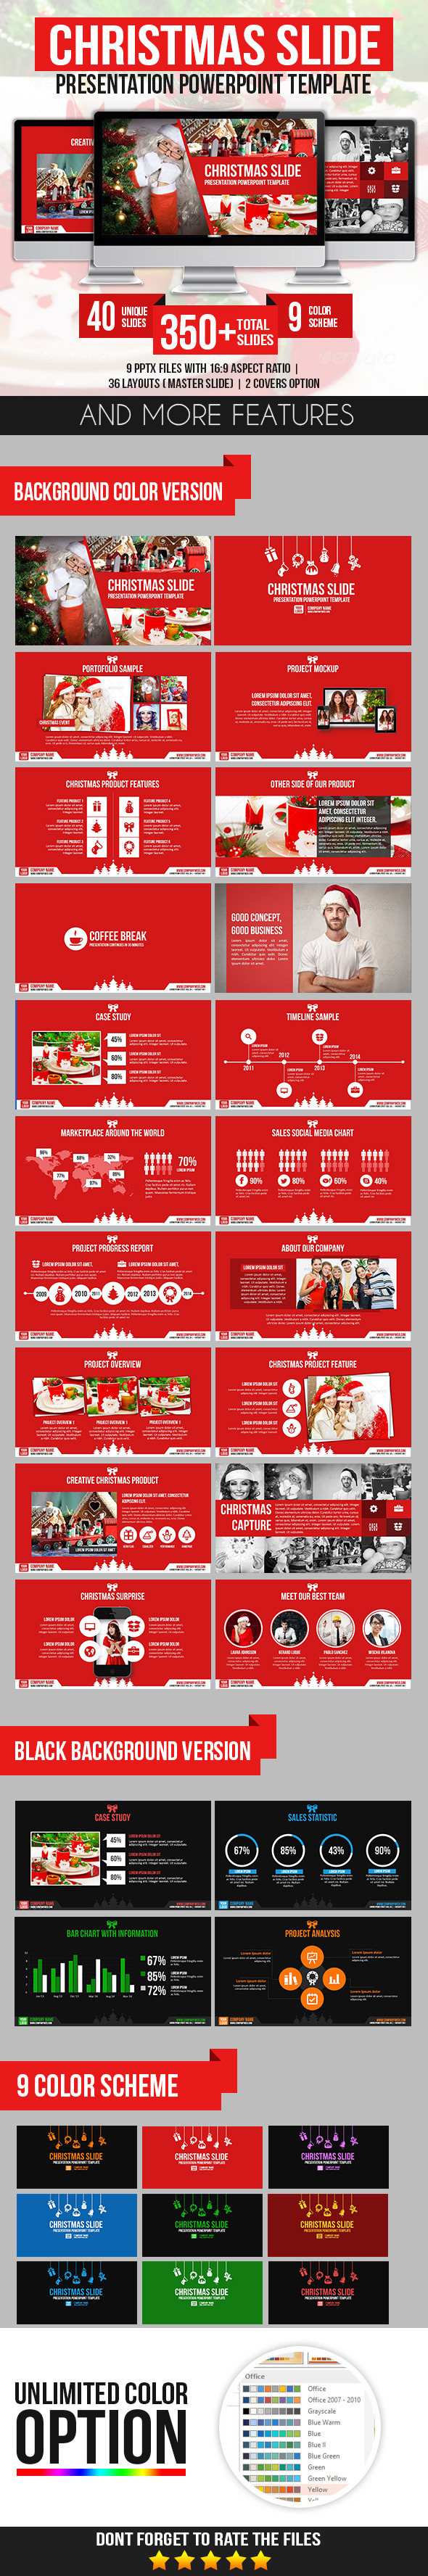 Christmas Slide Presentation PowerPoint Template - Business PowerPoint Templates